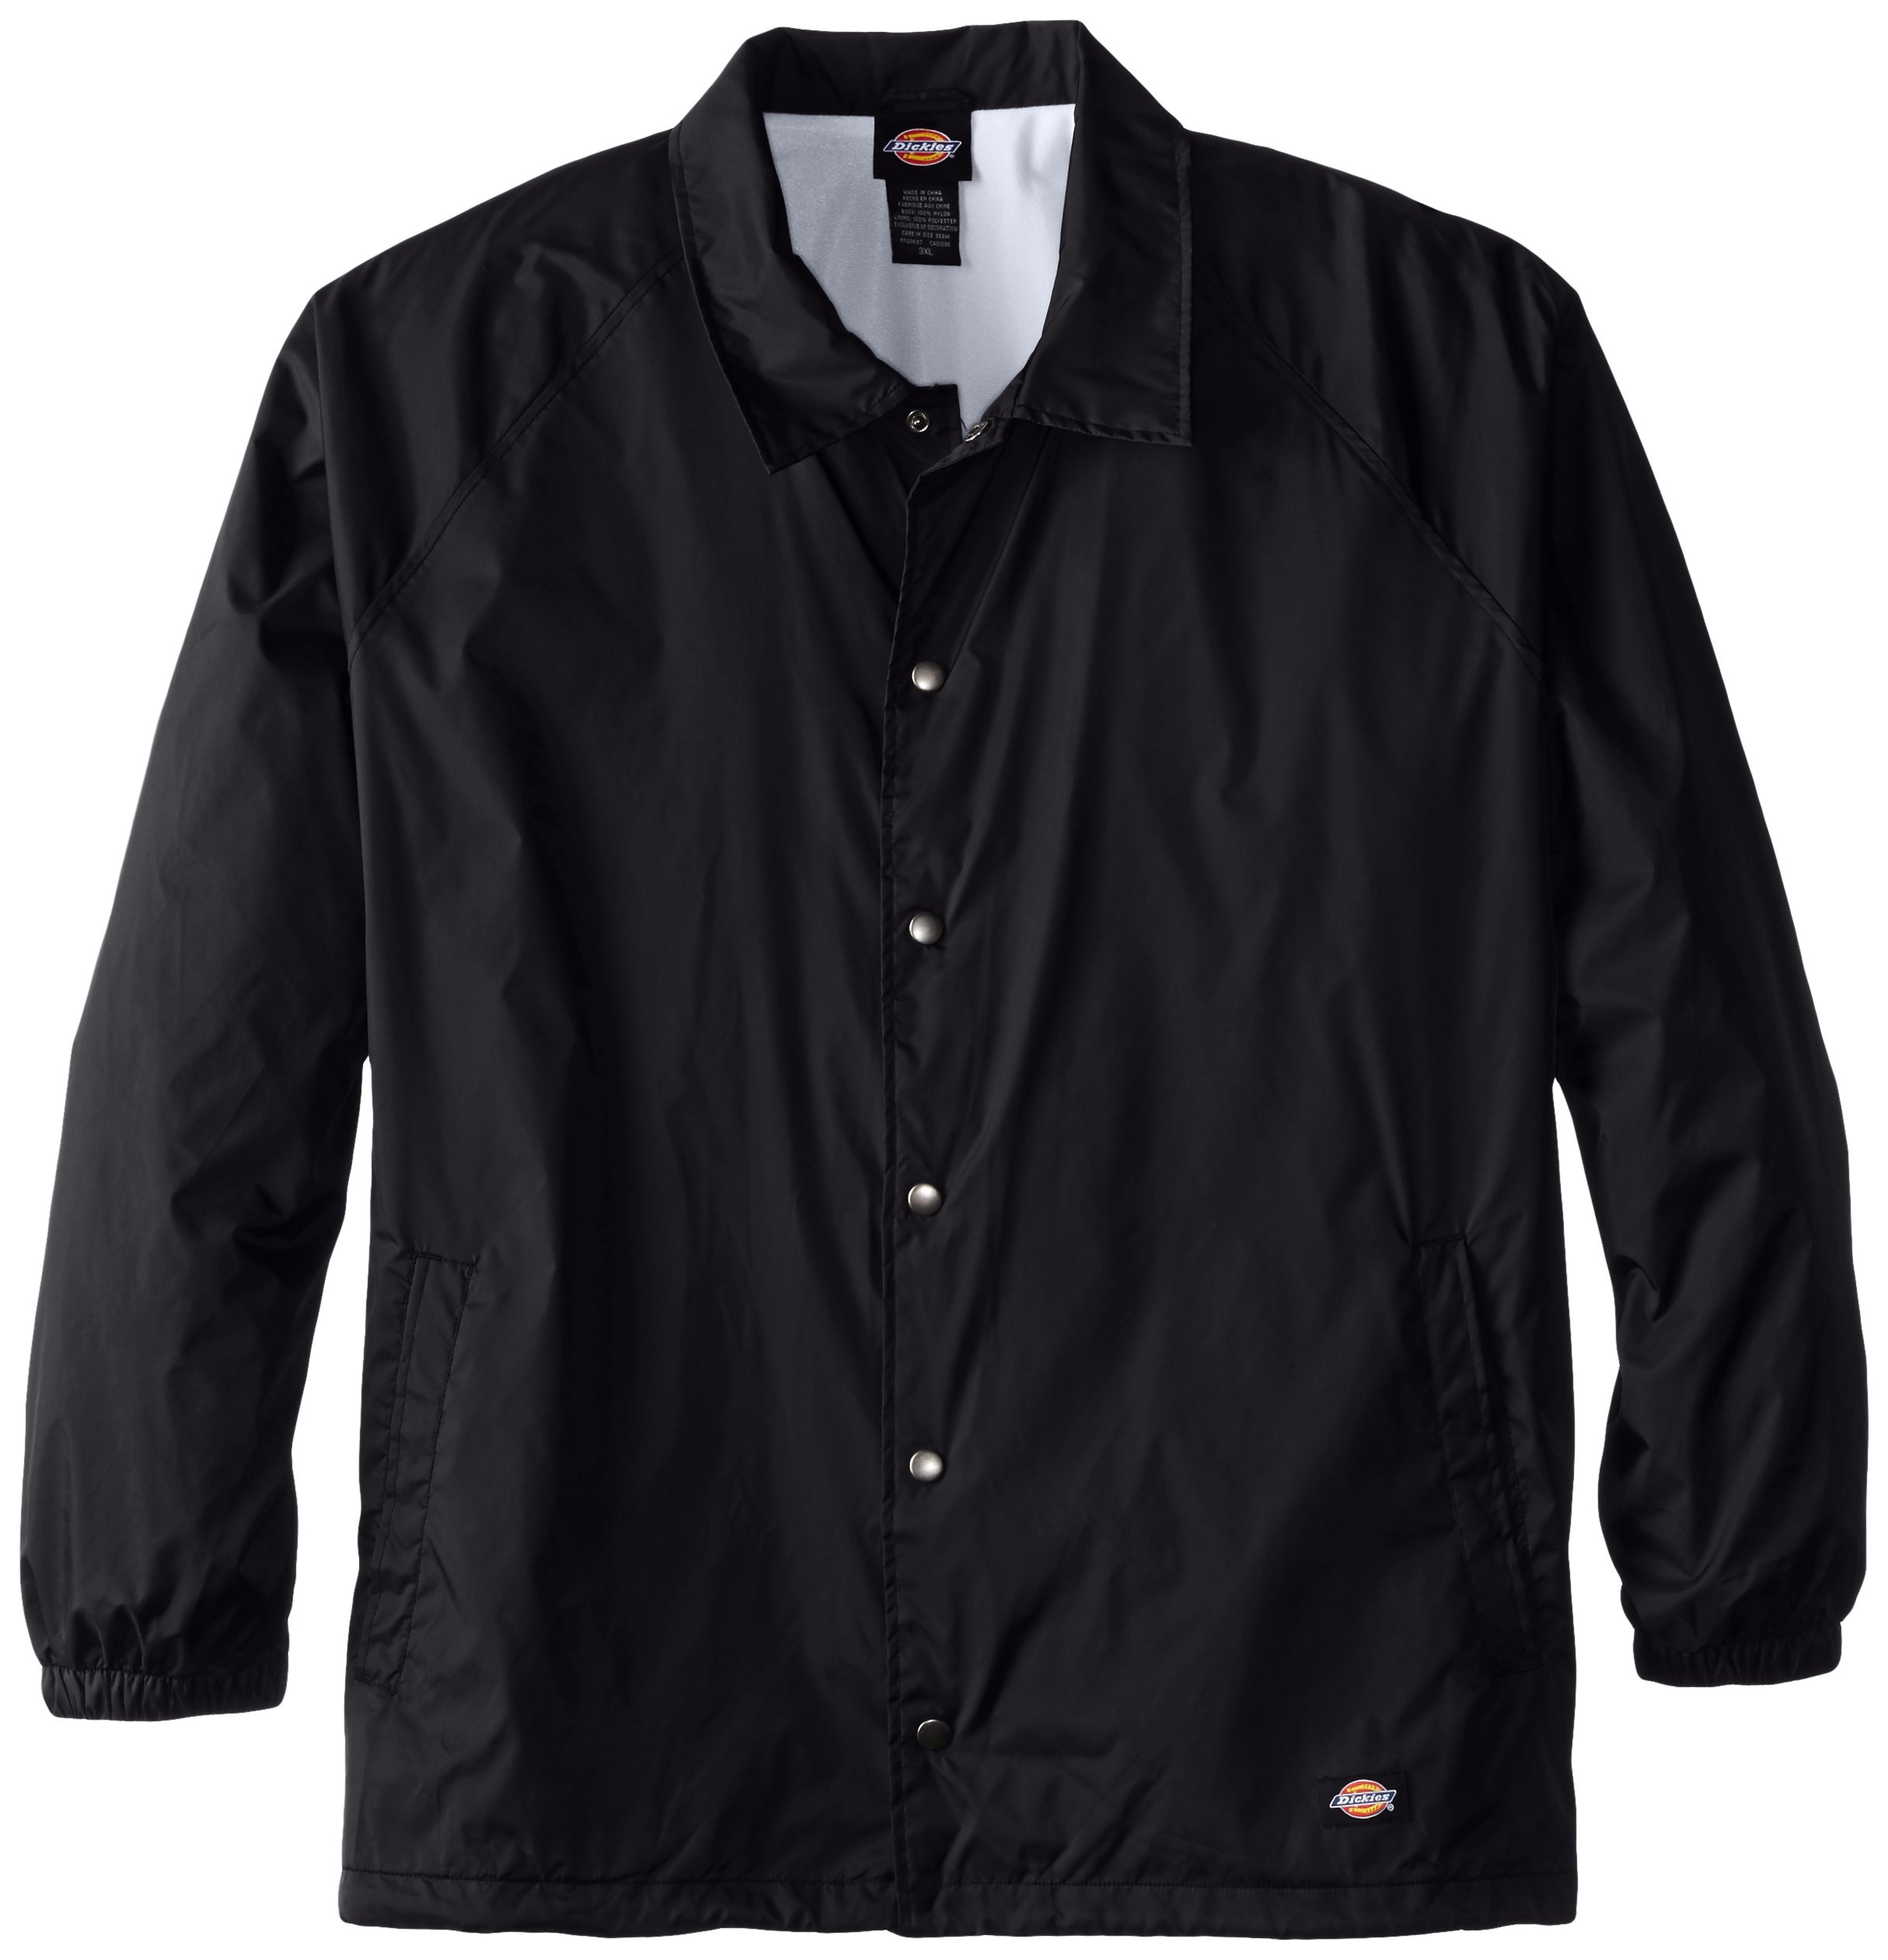 Dickies Men's Big Snap Front Nylon Jacket, Black, 5X by Dickies